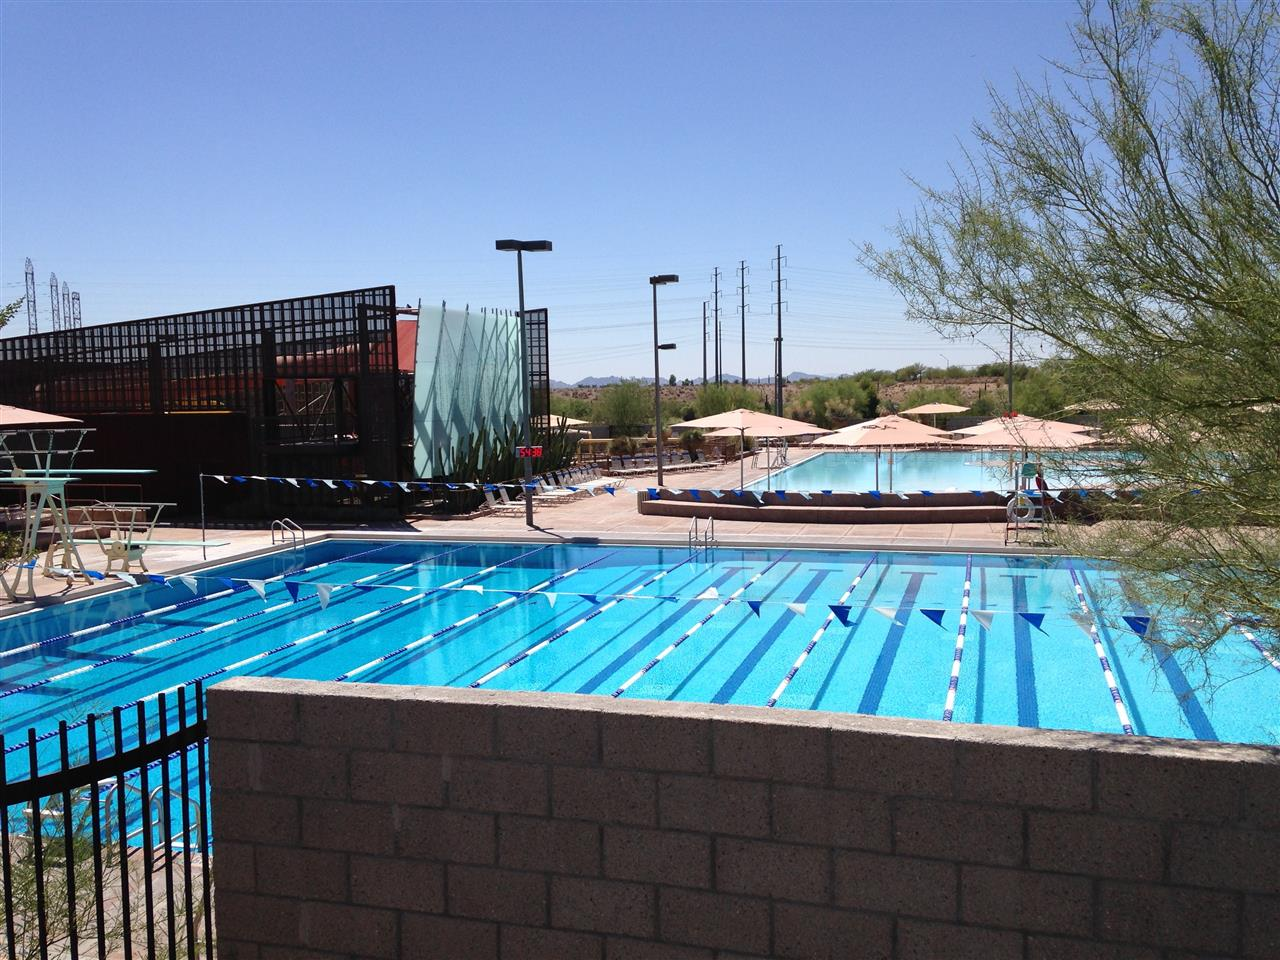 Incredible McDowell Mtn Ranch Aquatic and Fitness Center run by the city of #Scottsdale#Arizona